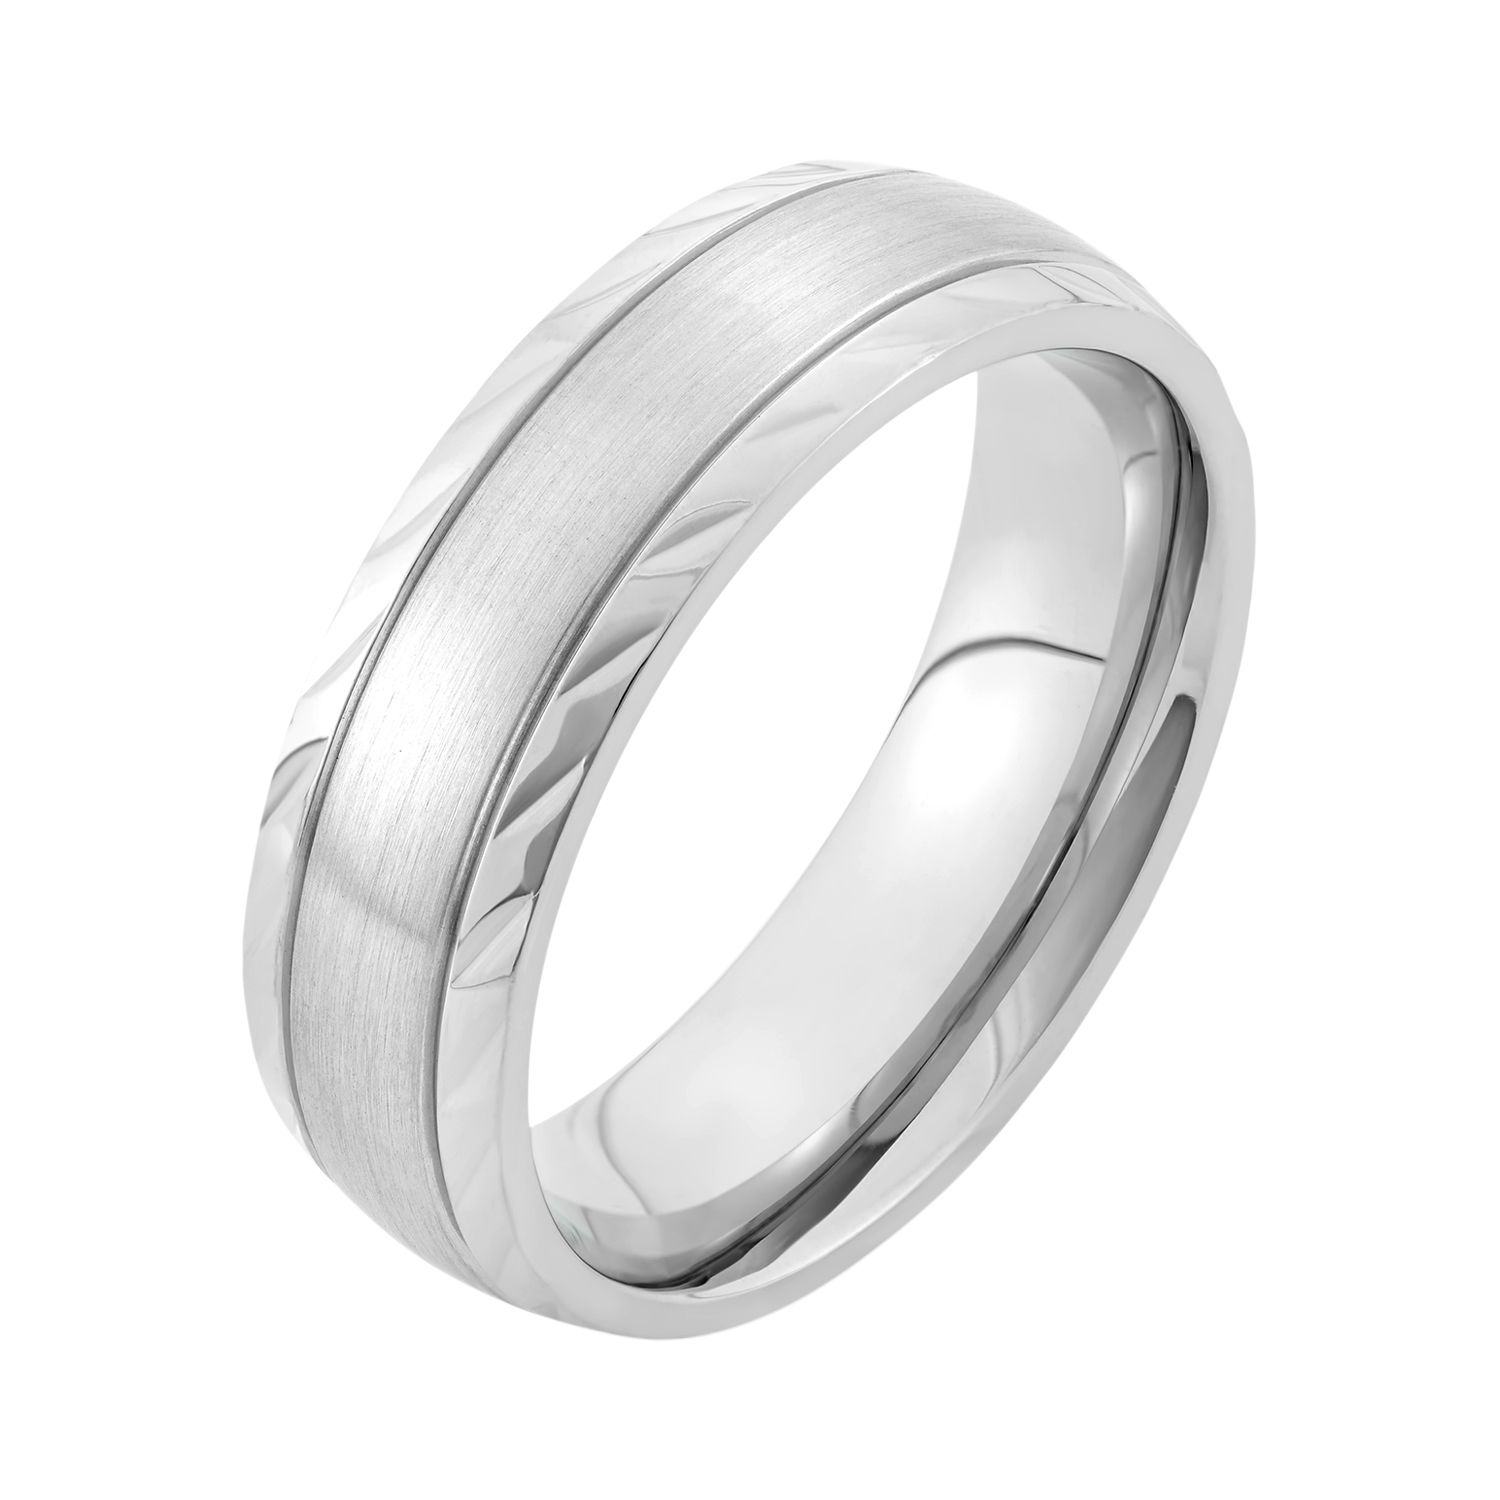 american ring wedding pinterest uniquetitanium unique best rings titanium flag images on